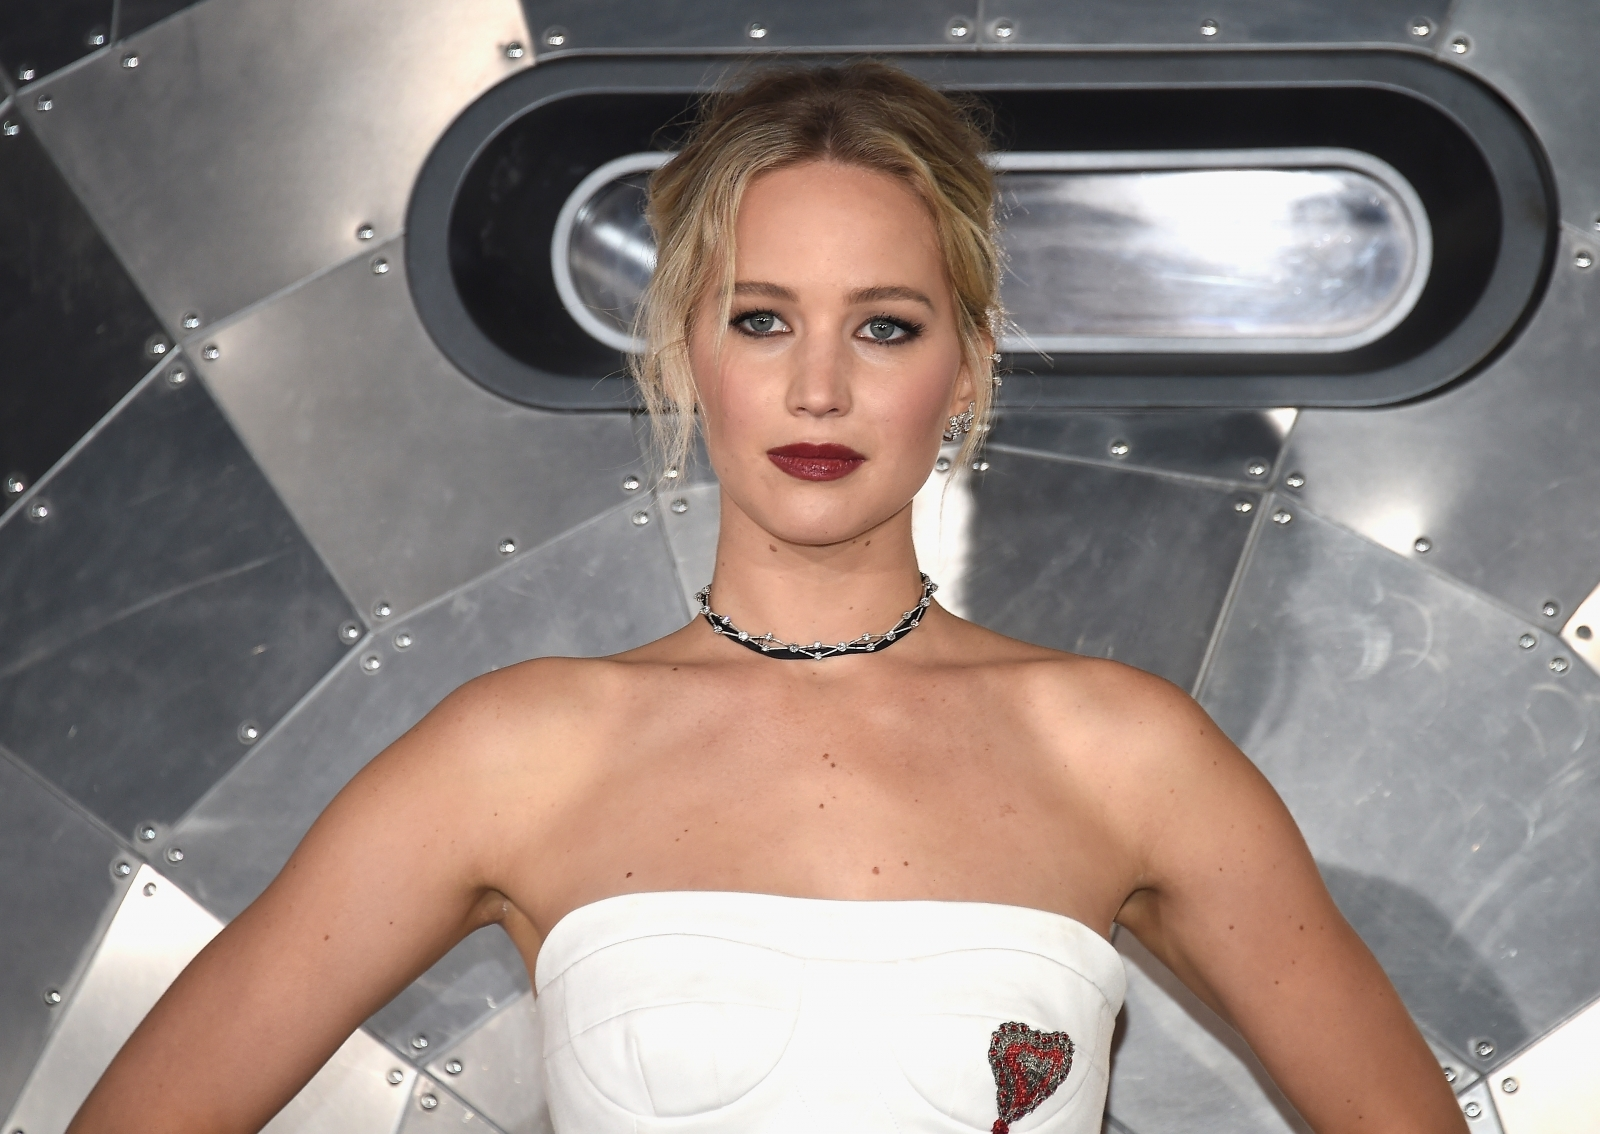 Jennifer Lawrence poses nearly naked for Vogue photoshoot and fans are going wild: 'Natural beauty'